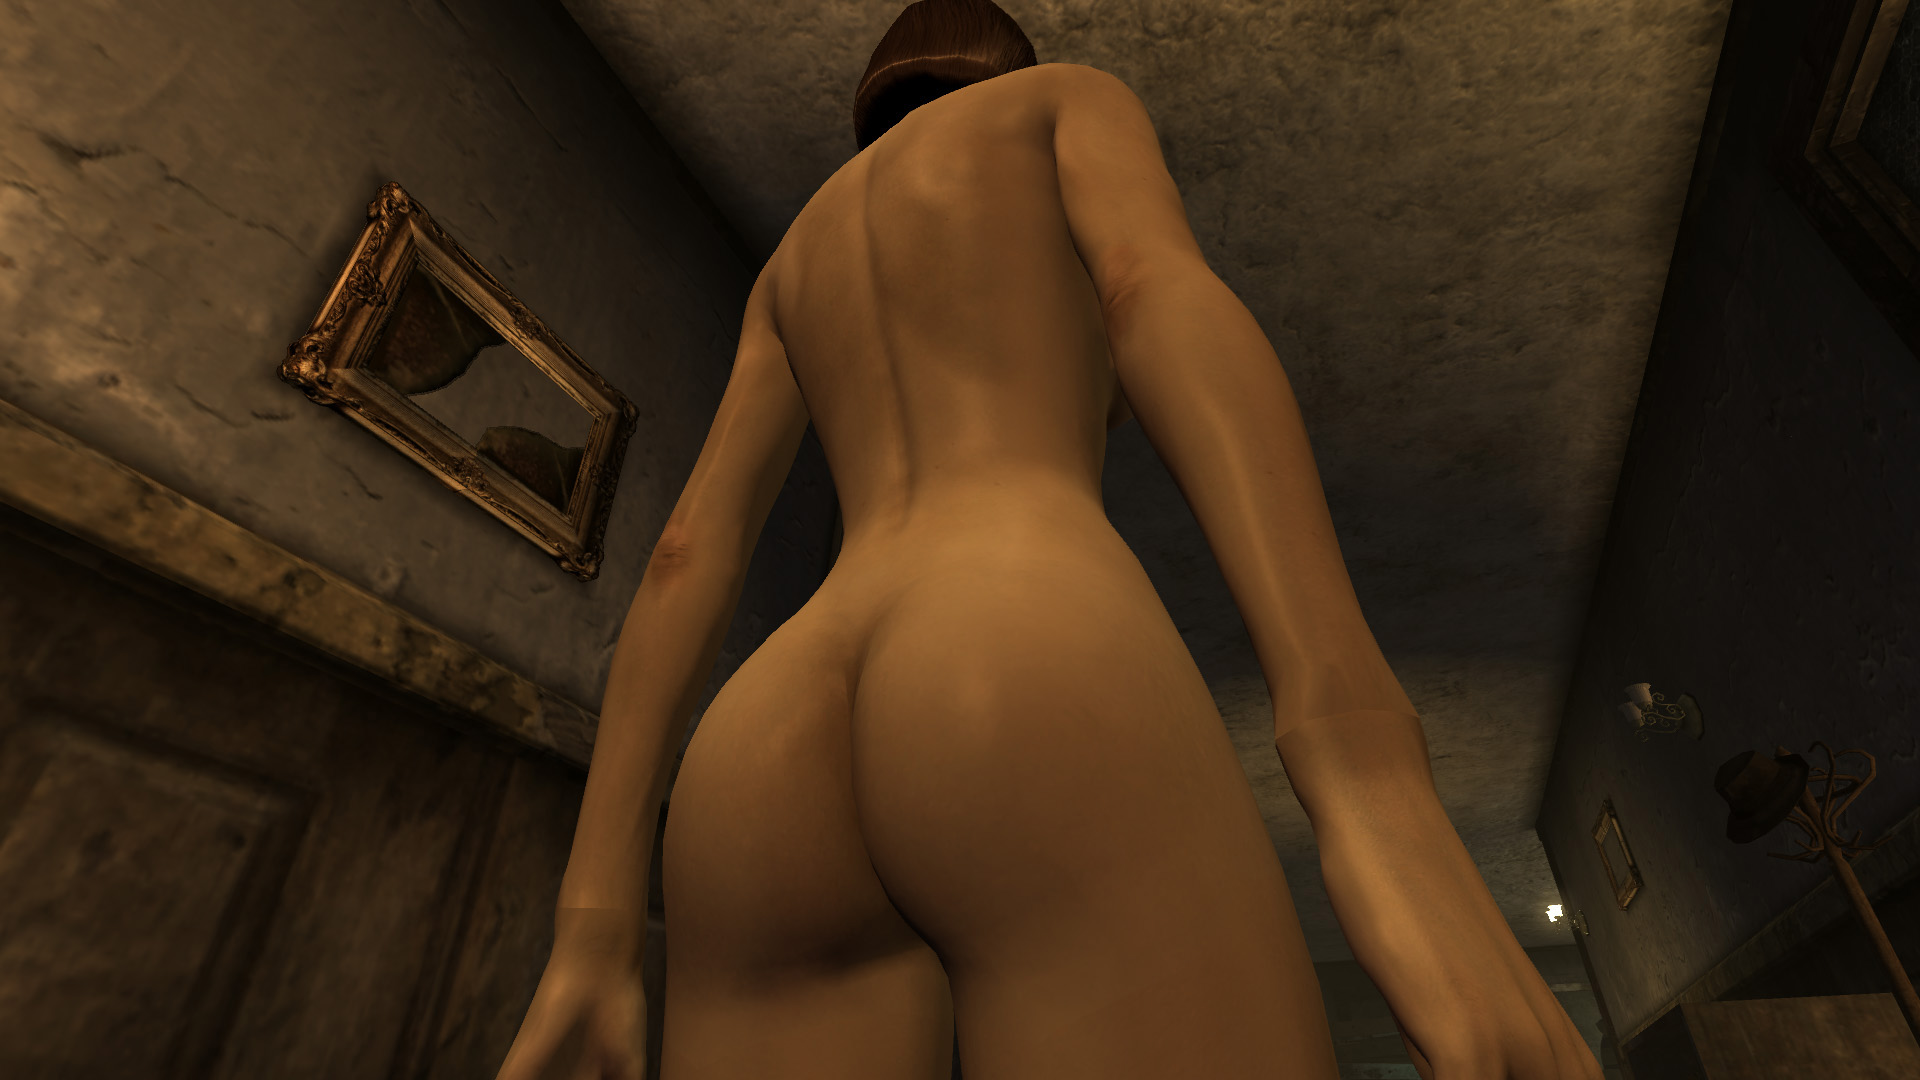 Fallout new vegas nude women anime photo